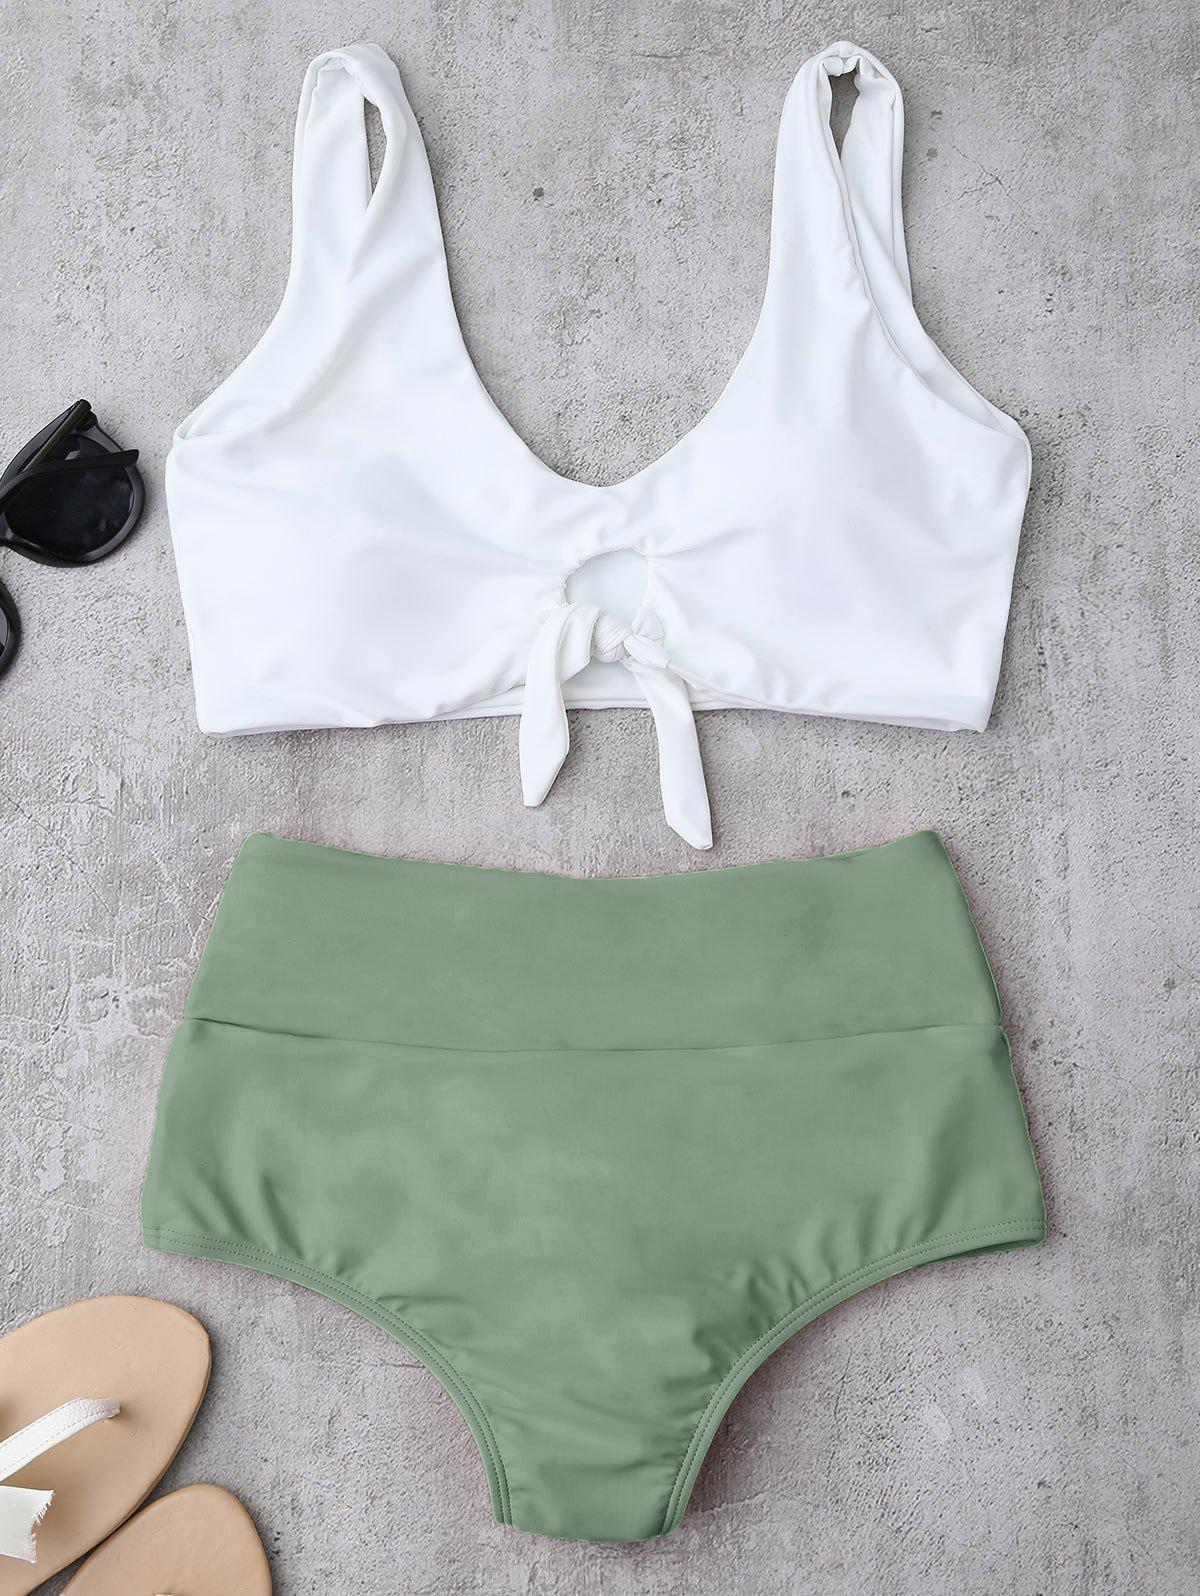 High Waisted Ruched Bikini SetWOMEN<br><br>Size: XL; Color: LIGHT GREEN; Swimwear Type: Bikini; Gender: For Women; Material: Chinlon,Spandex; Bra Style: Padded; Support Type: Wire Free; Neckline: Straps; Pattern Type: Others; Waist: High Waisted; Elasticity: Elastic; Weight: 0.2200kg; Package Contents: 1 x Top  1 x Briefs;